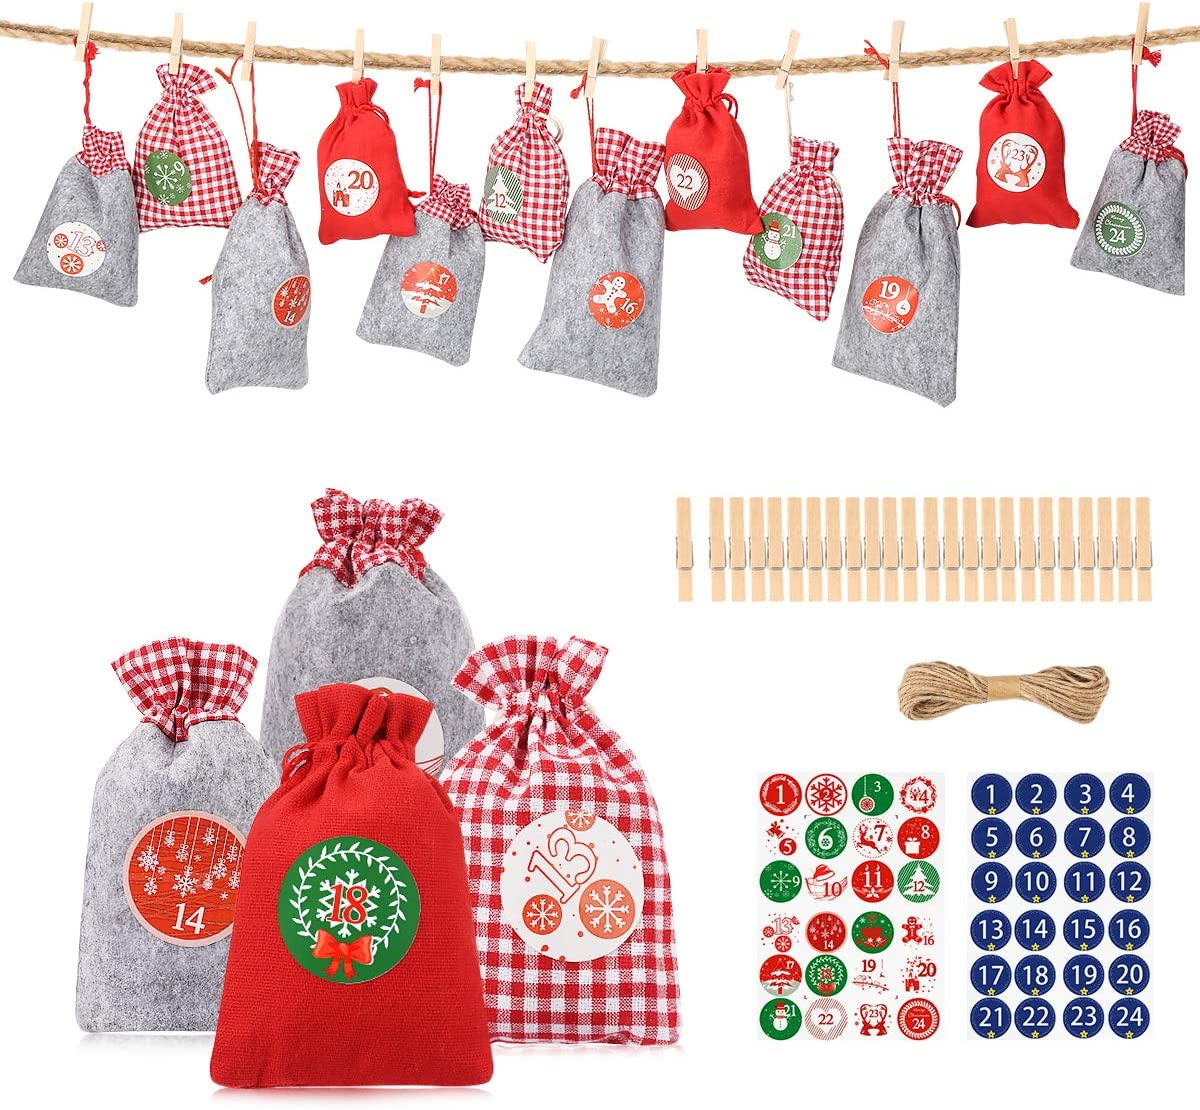 Advent calendar kit with 24 fabric bags in 24 colors with white stars and numbered tags ribbons and a cord included.